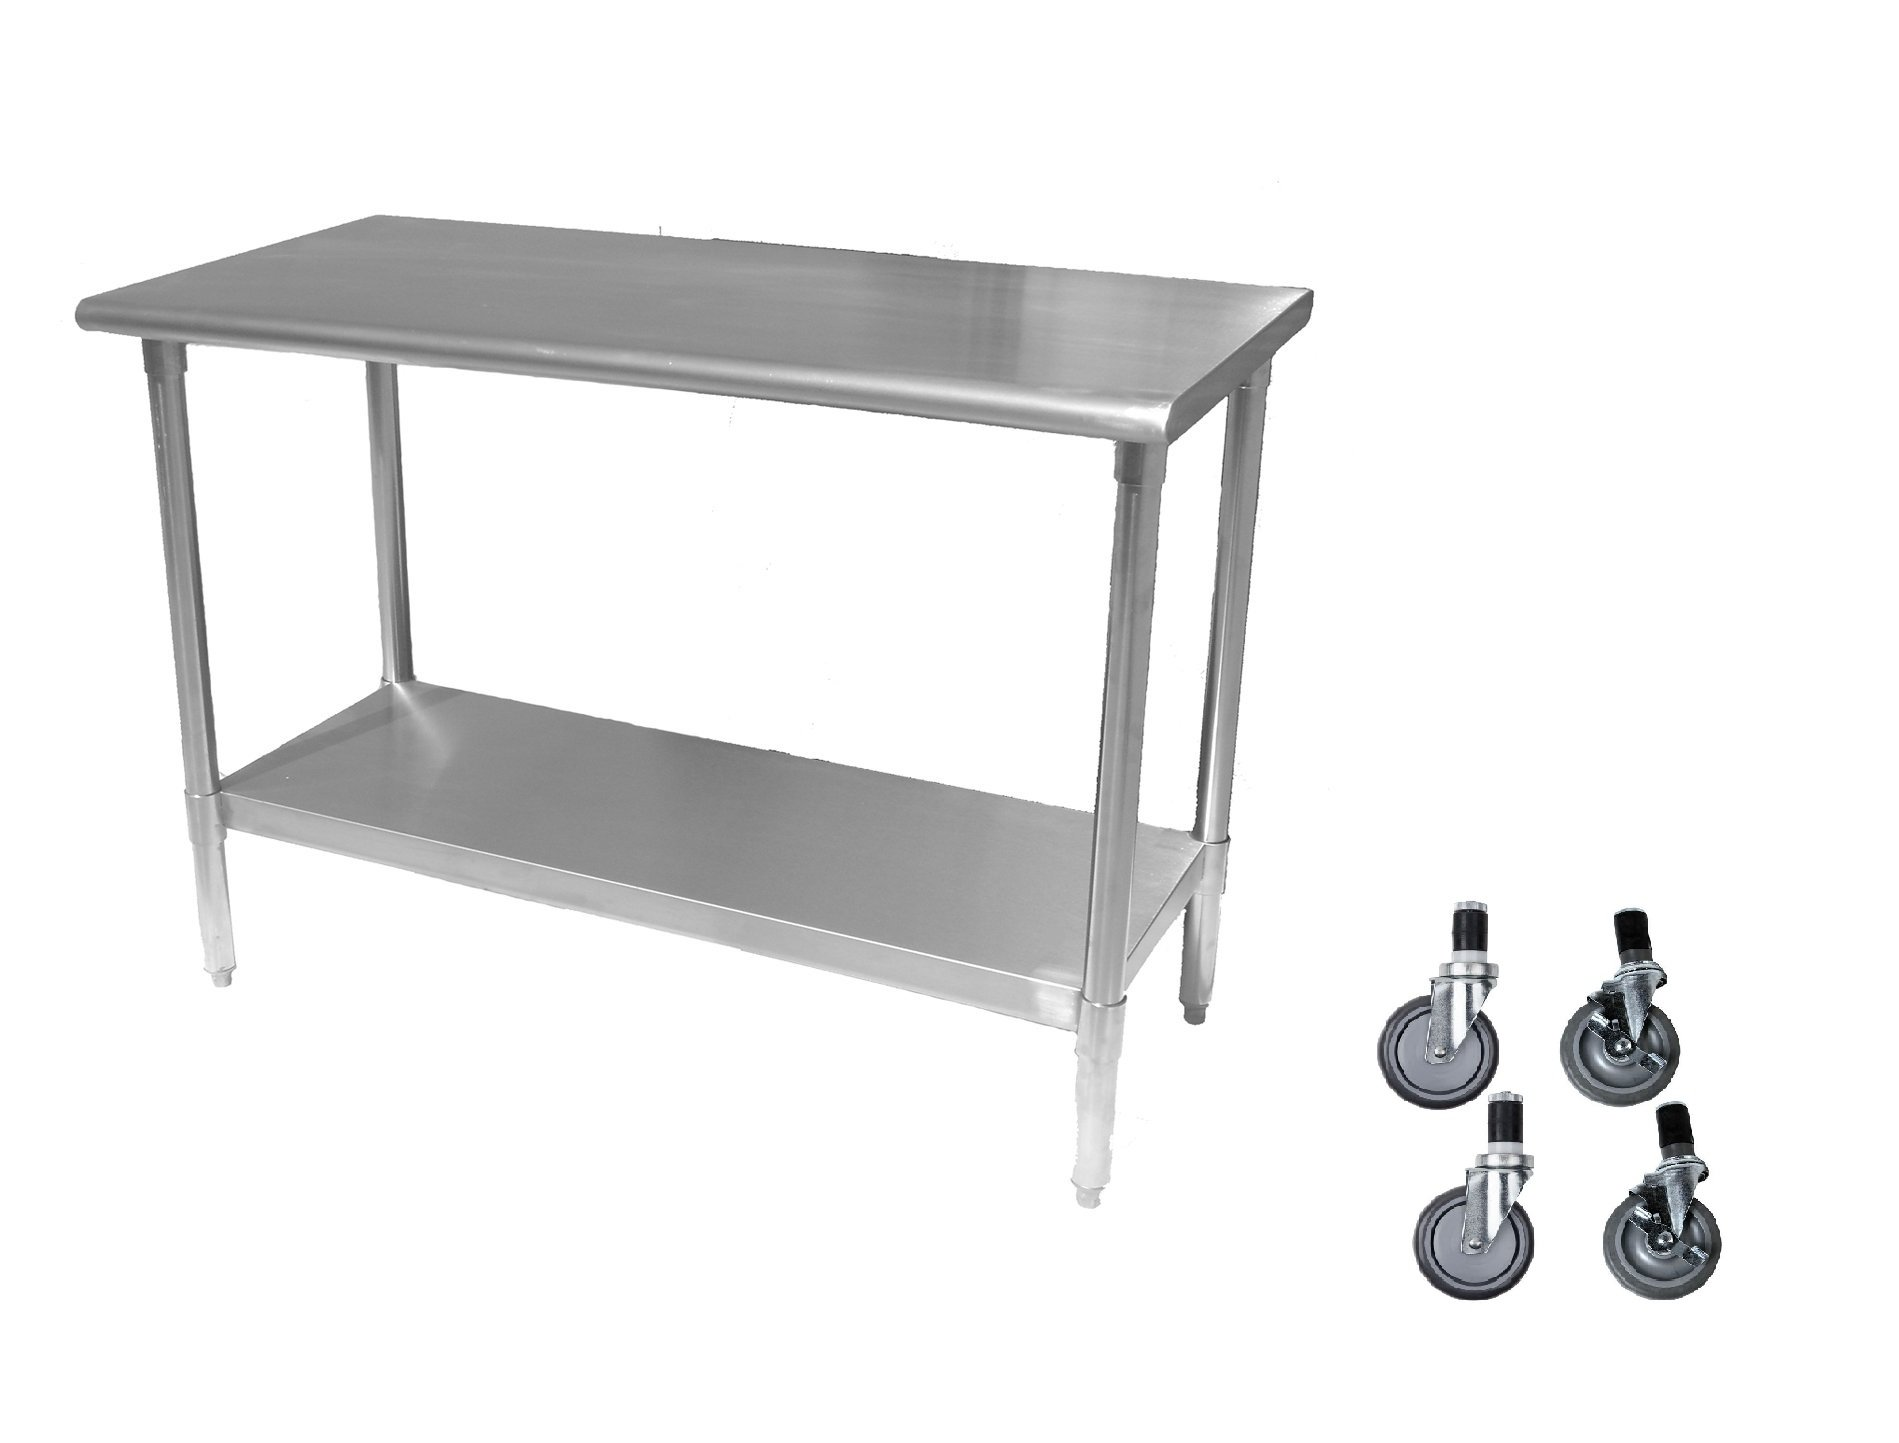 Stainless Steel Prep Work Table 18 x 72 with Casters - NSF - Heavy Duty